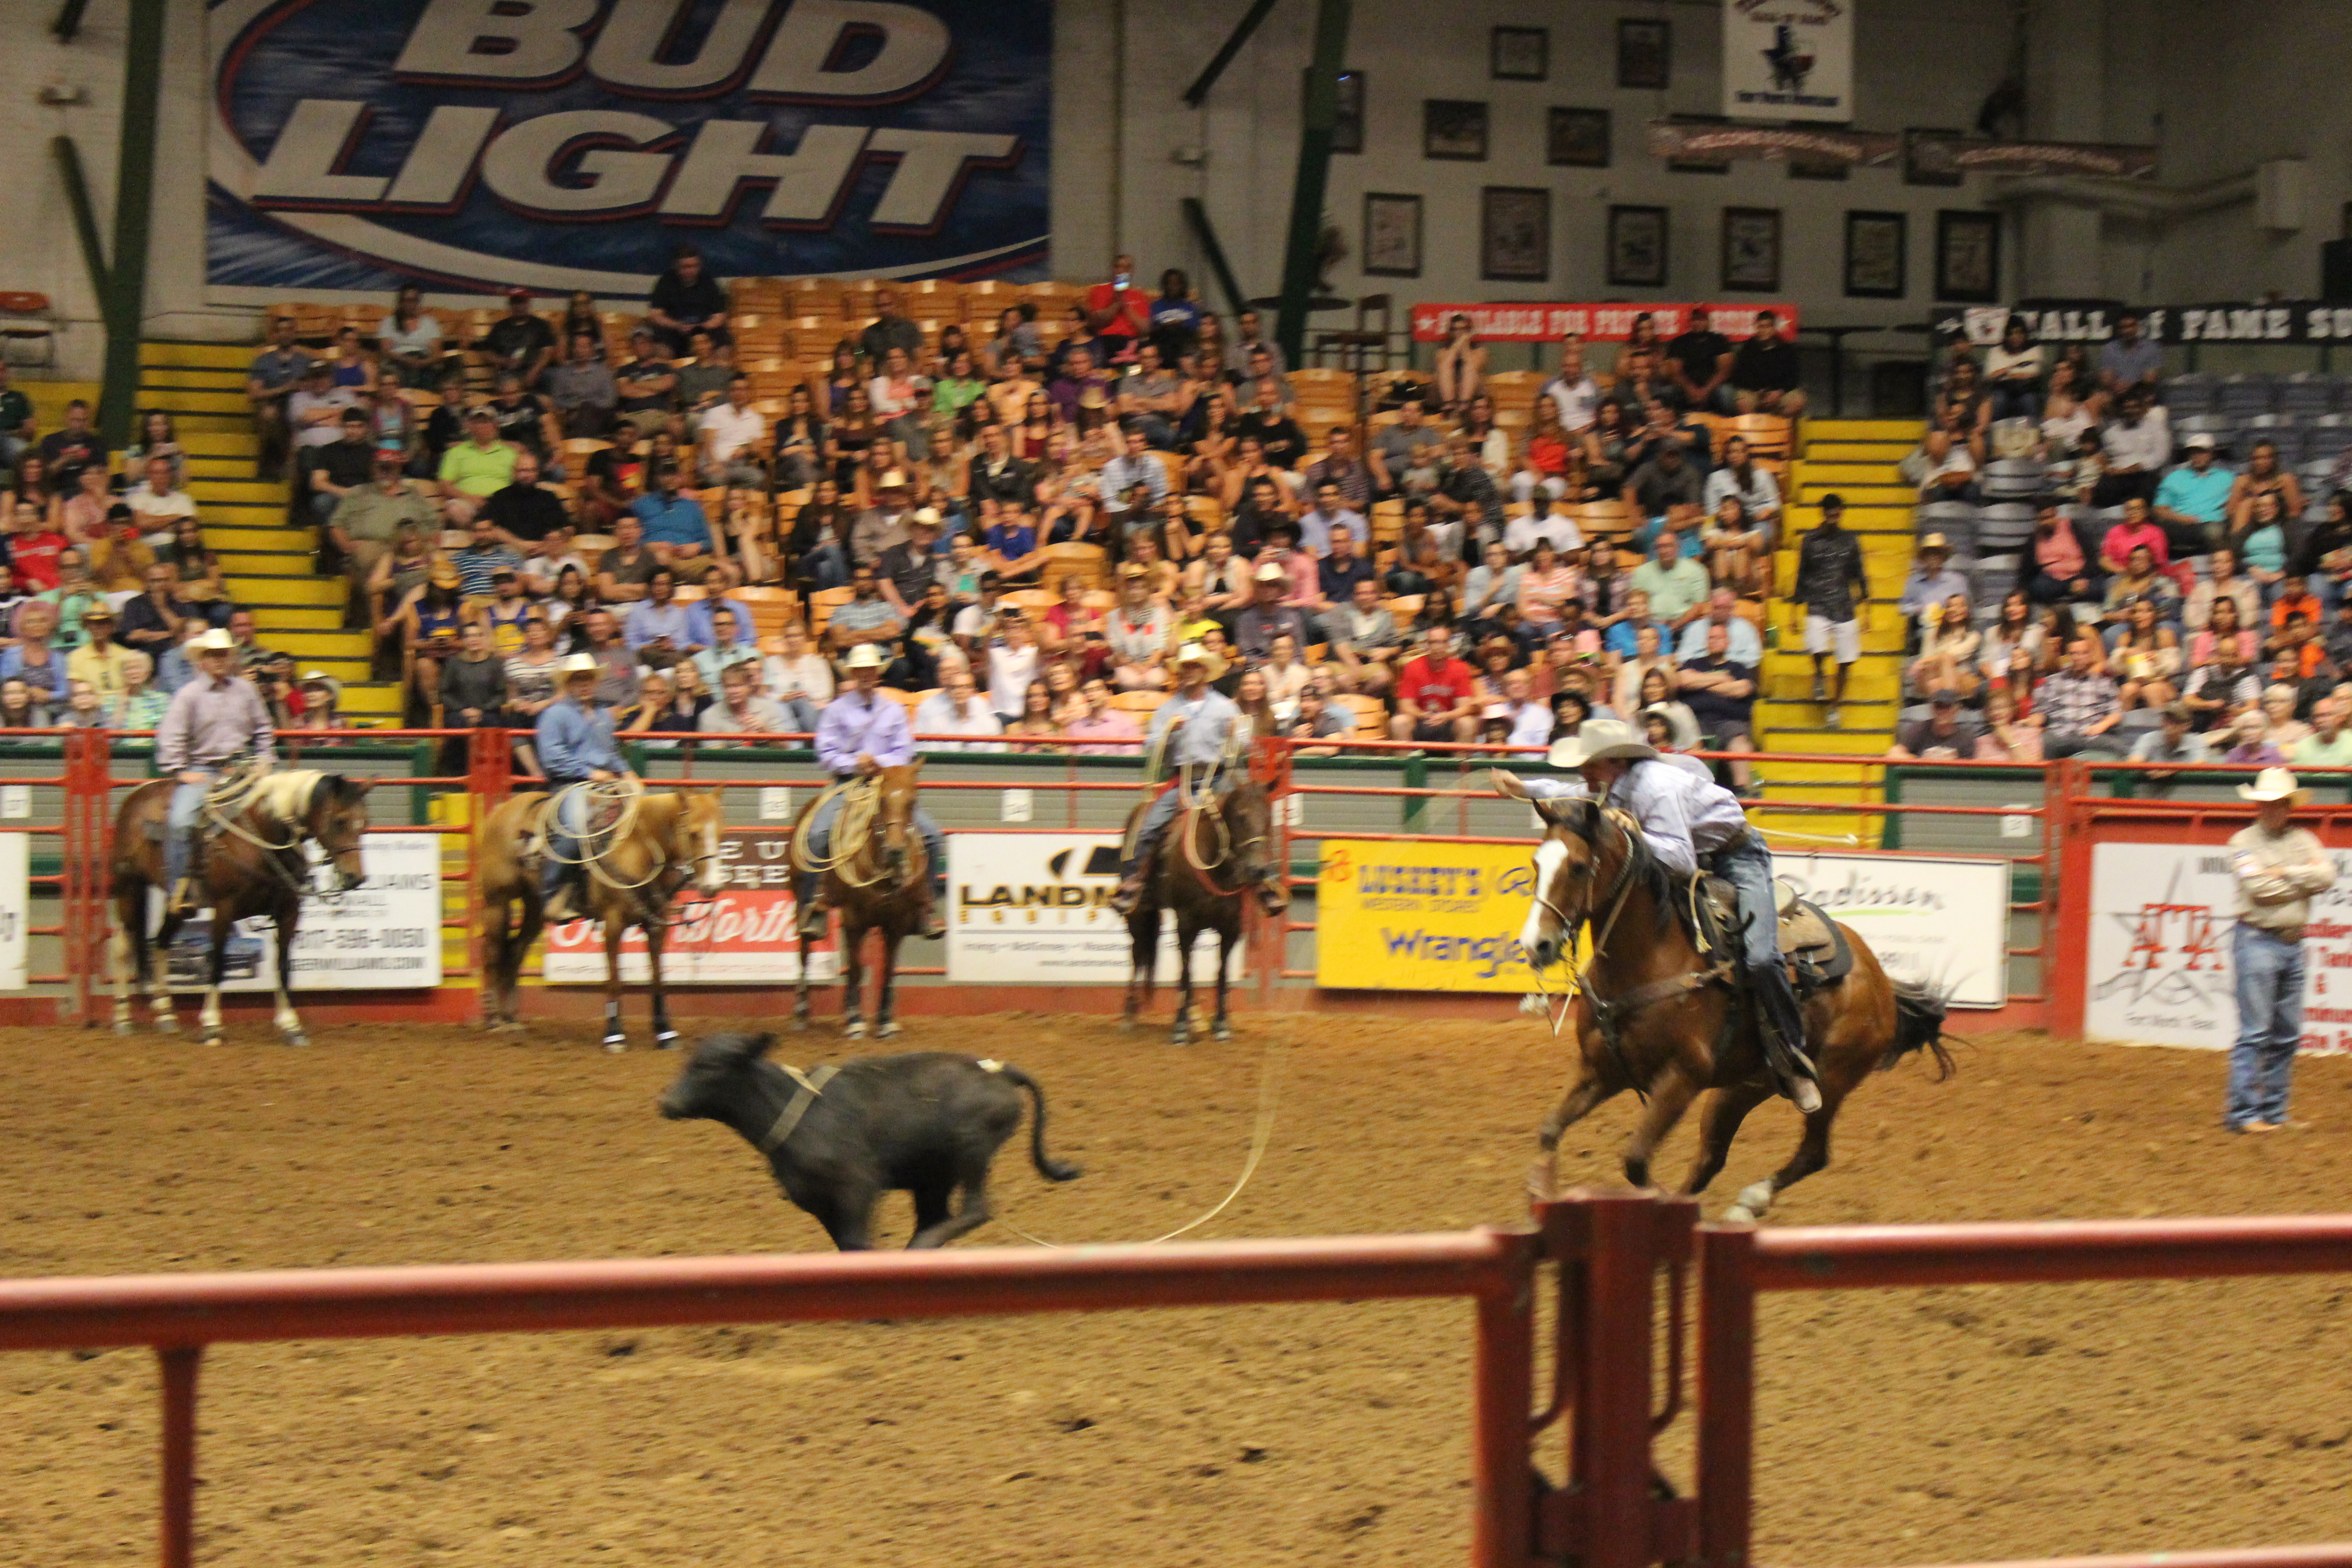 Fly Duo S Visit Stockyards Rodeo In Dallas Fort Worth